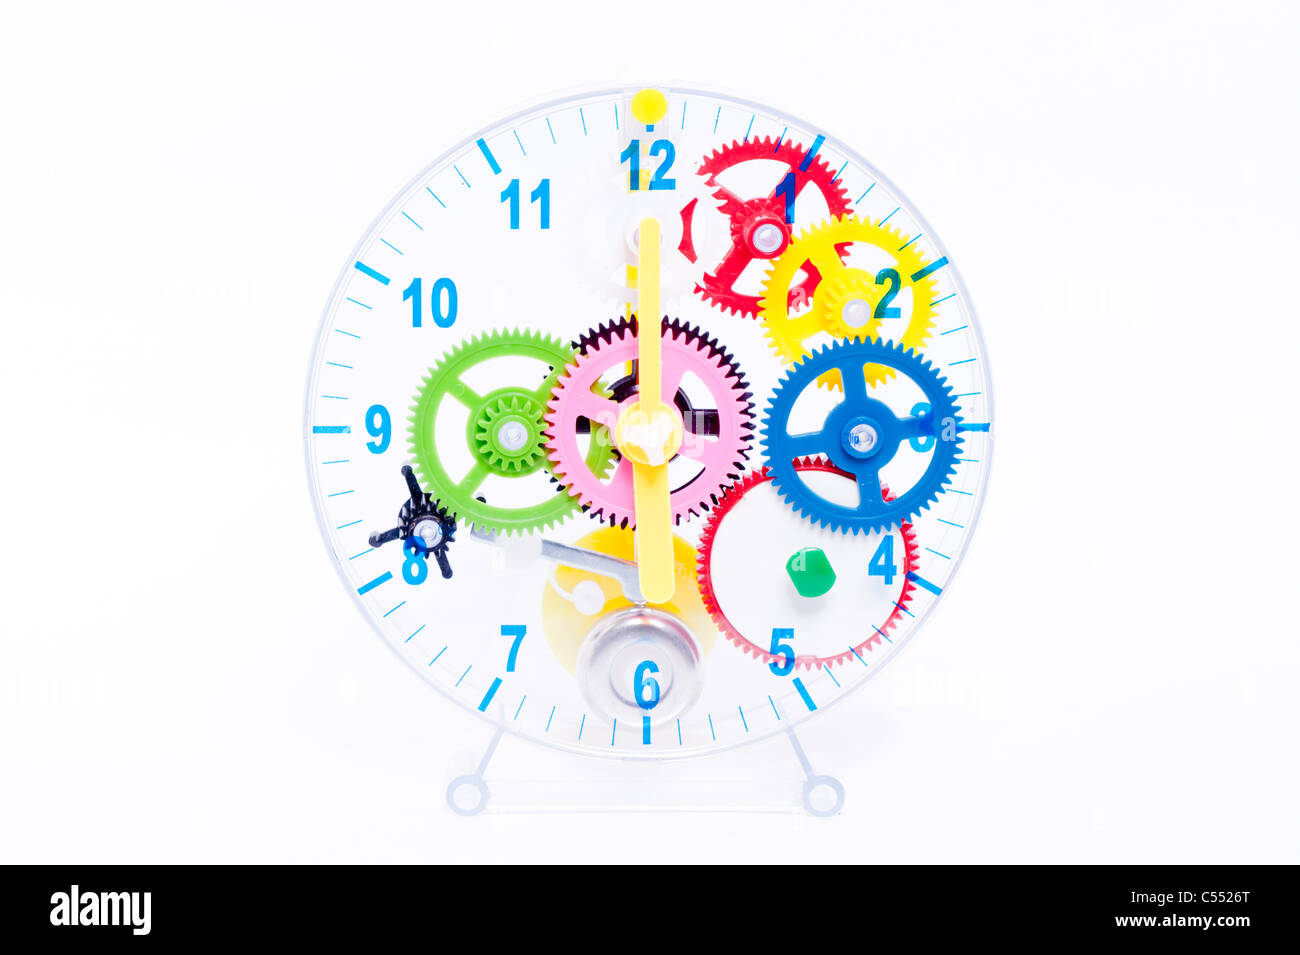 A childs make your own transparent clock kit with working mechanism on a white background Stock Photo